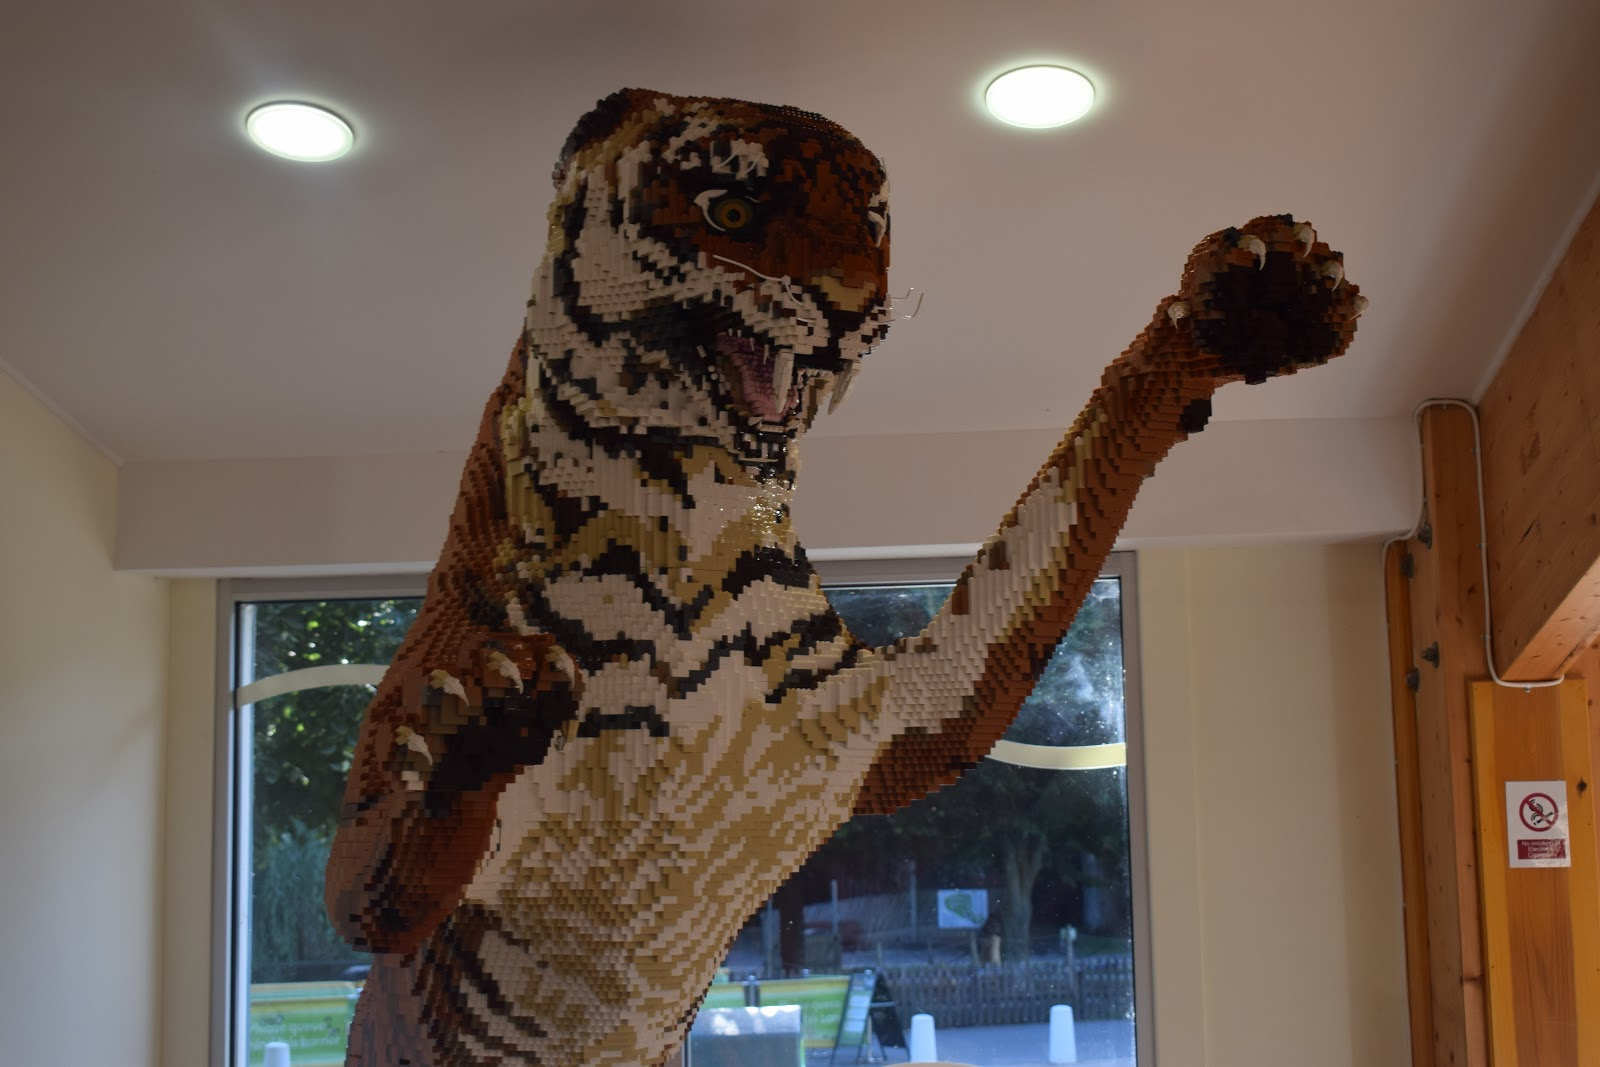 Marwell Zoo - The Great Brick Safari - Lego - Zoo day out   Mummy